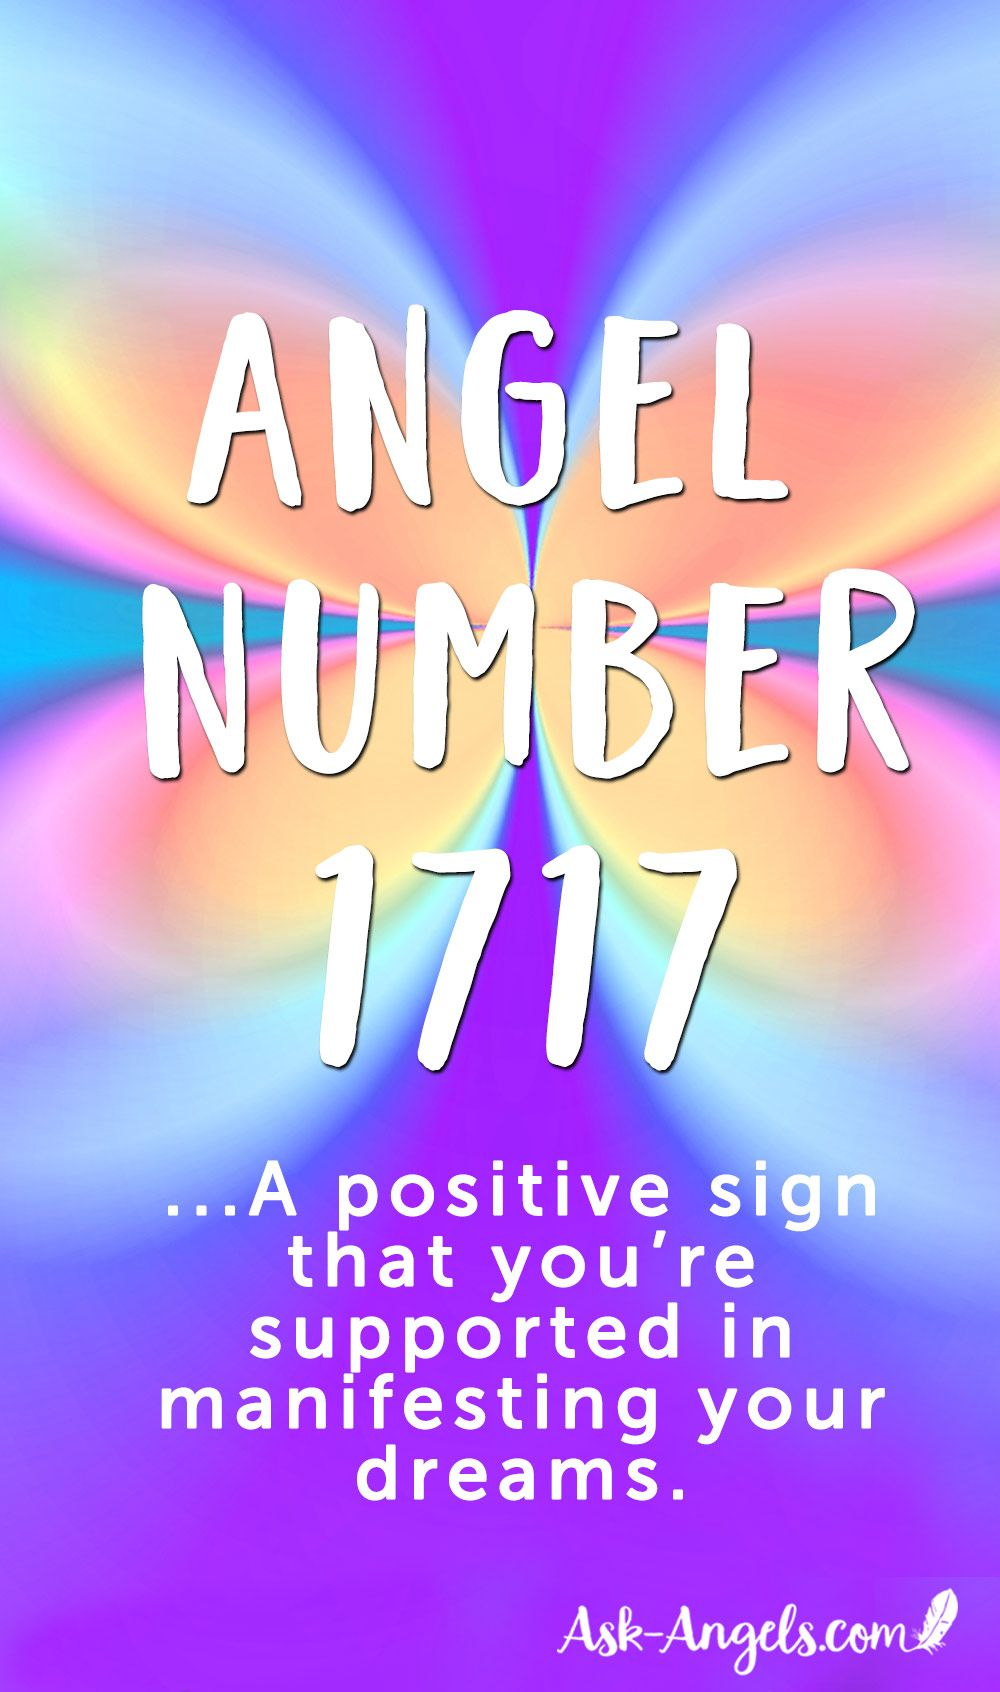 5555 meaning doreen virtue - 1717 Angel Number What Is The Meaning